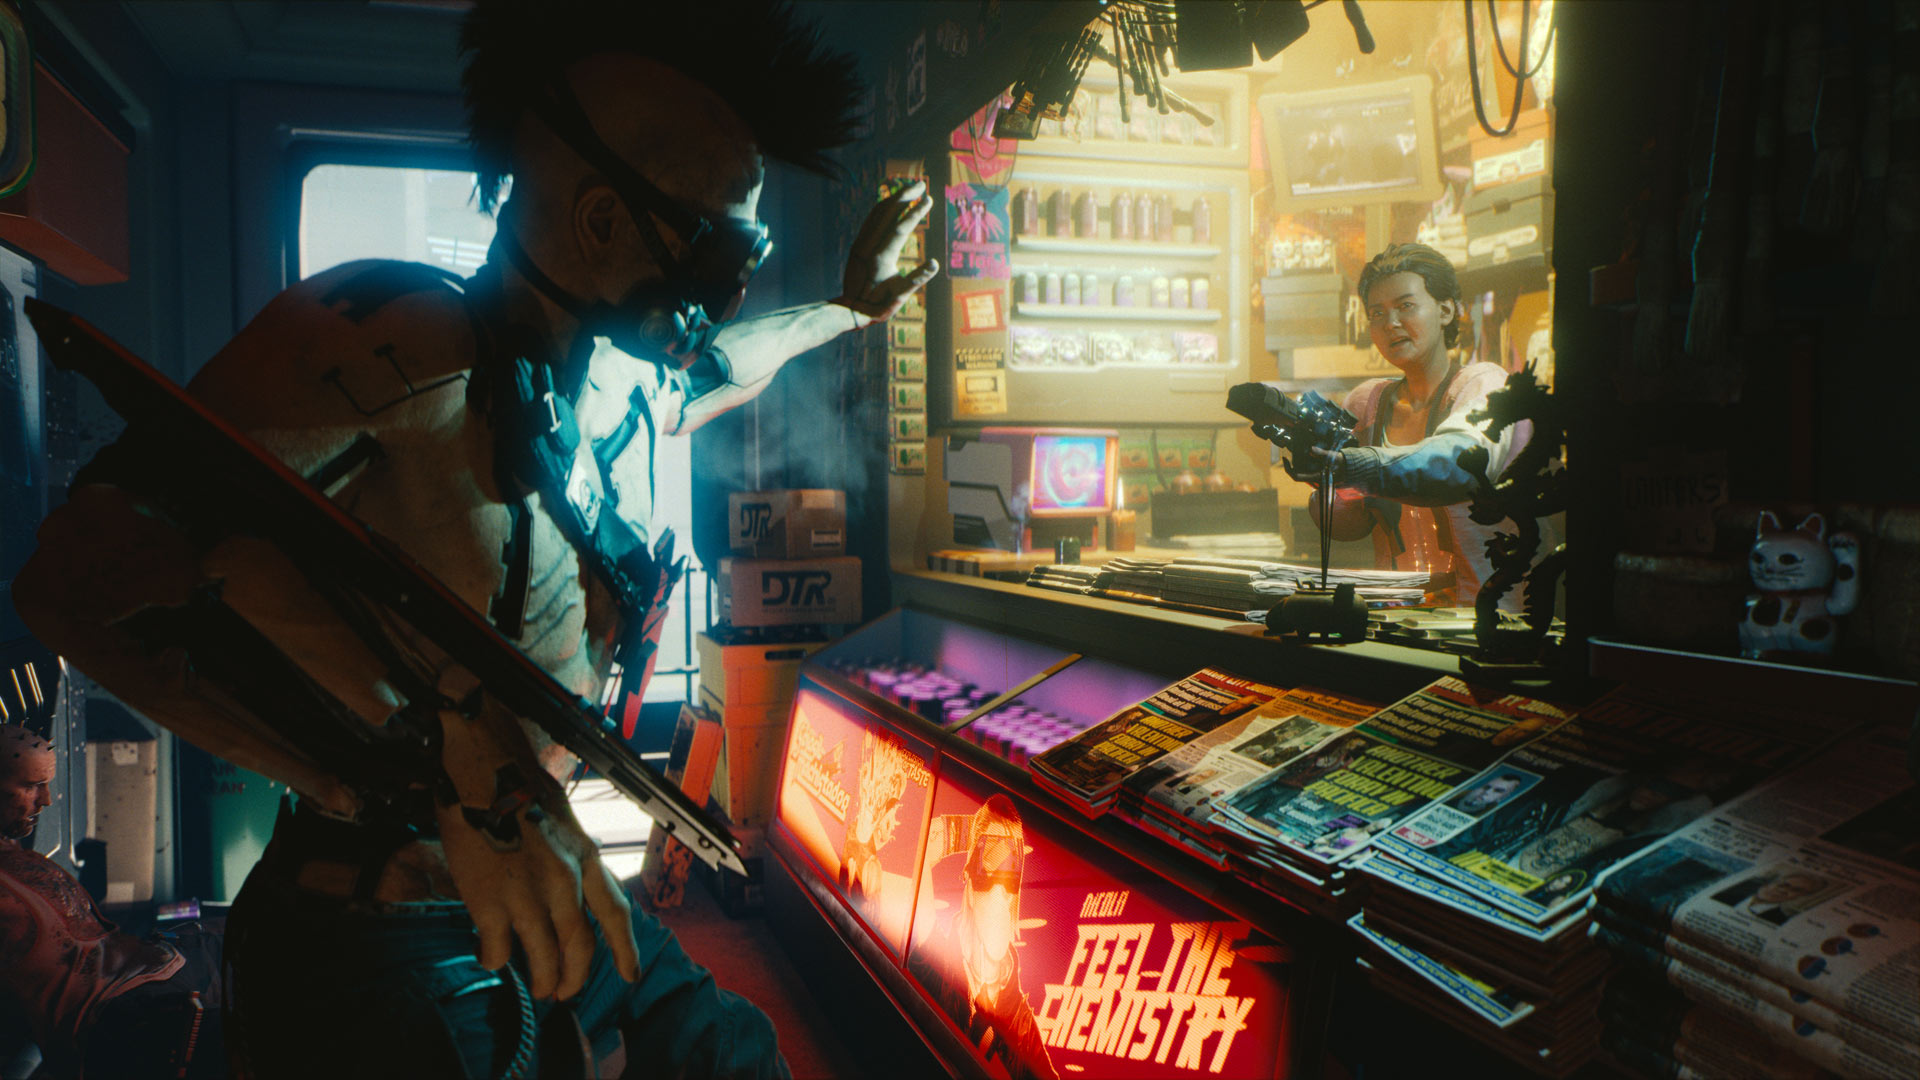 Cyberpunk's original creator hopes fans will be patient with